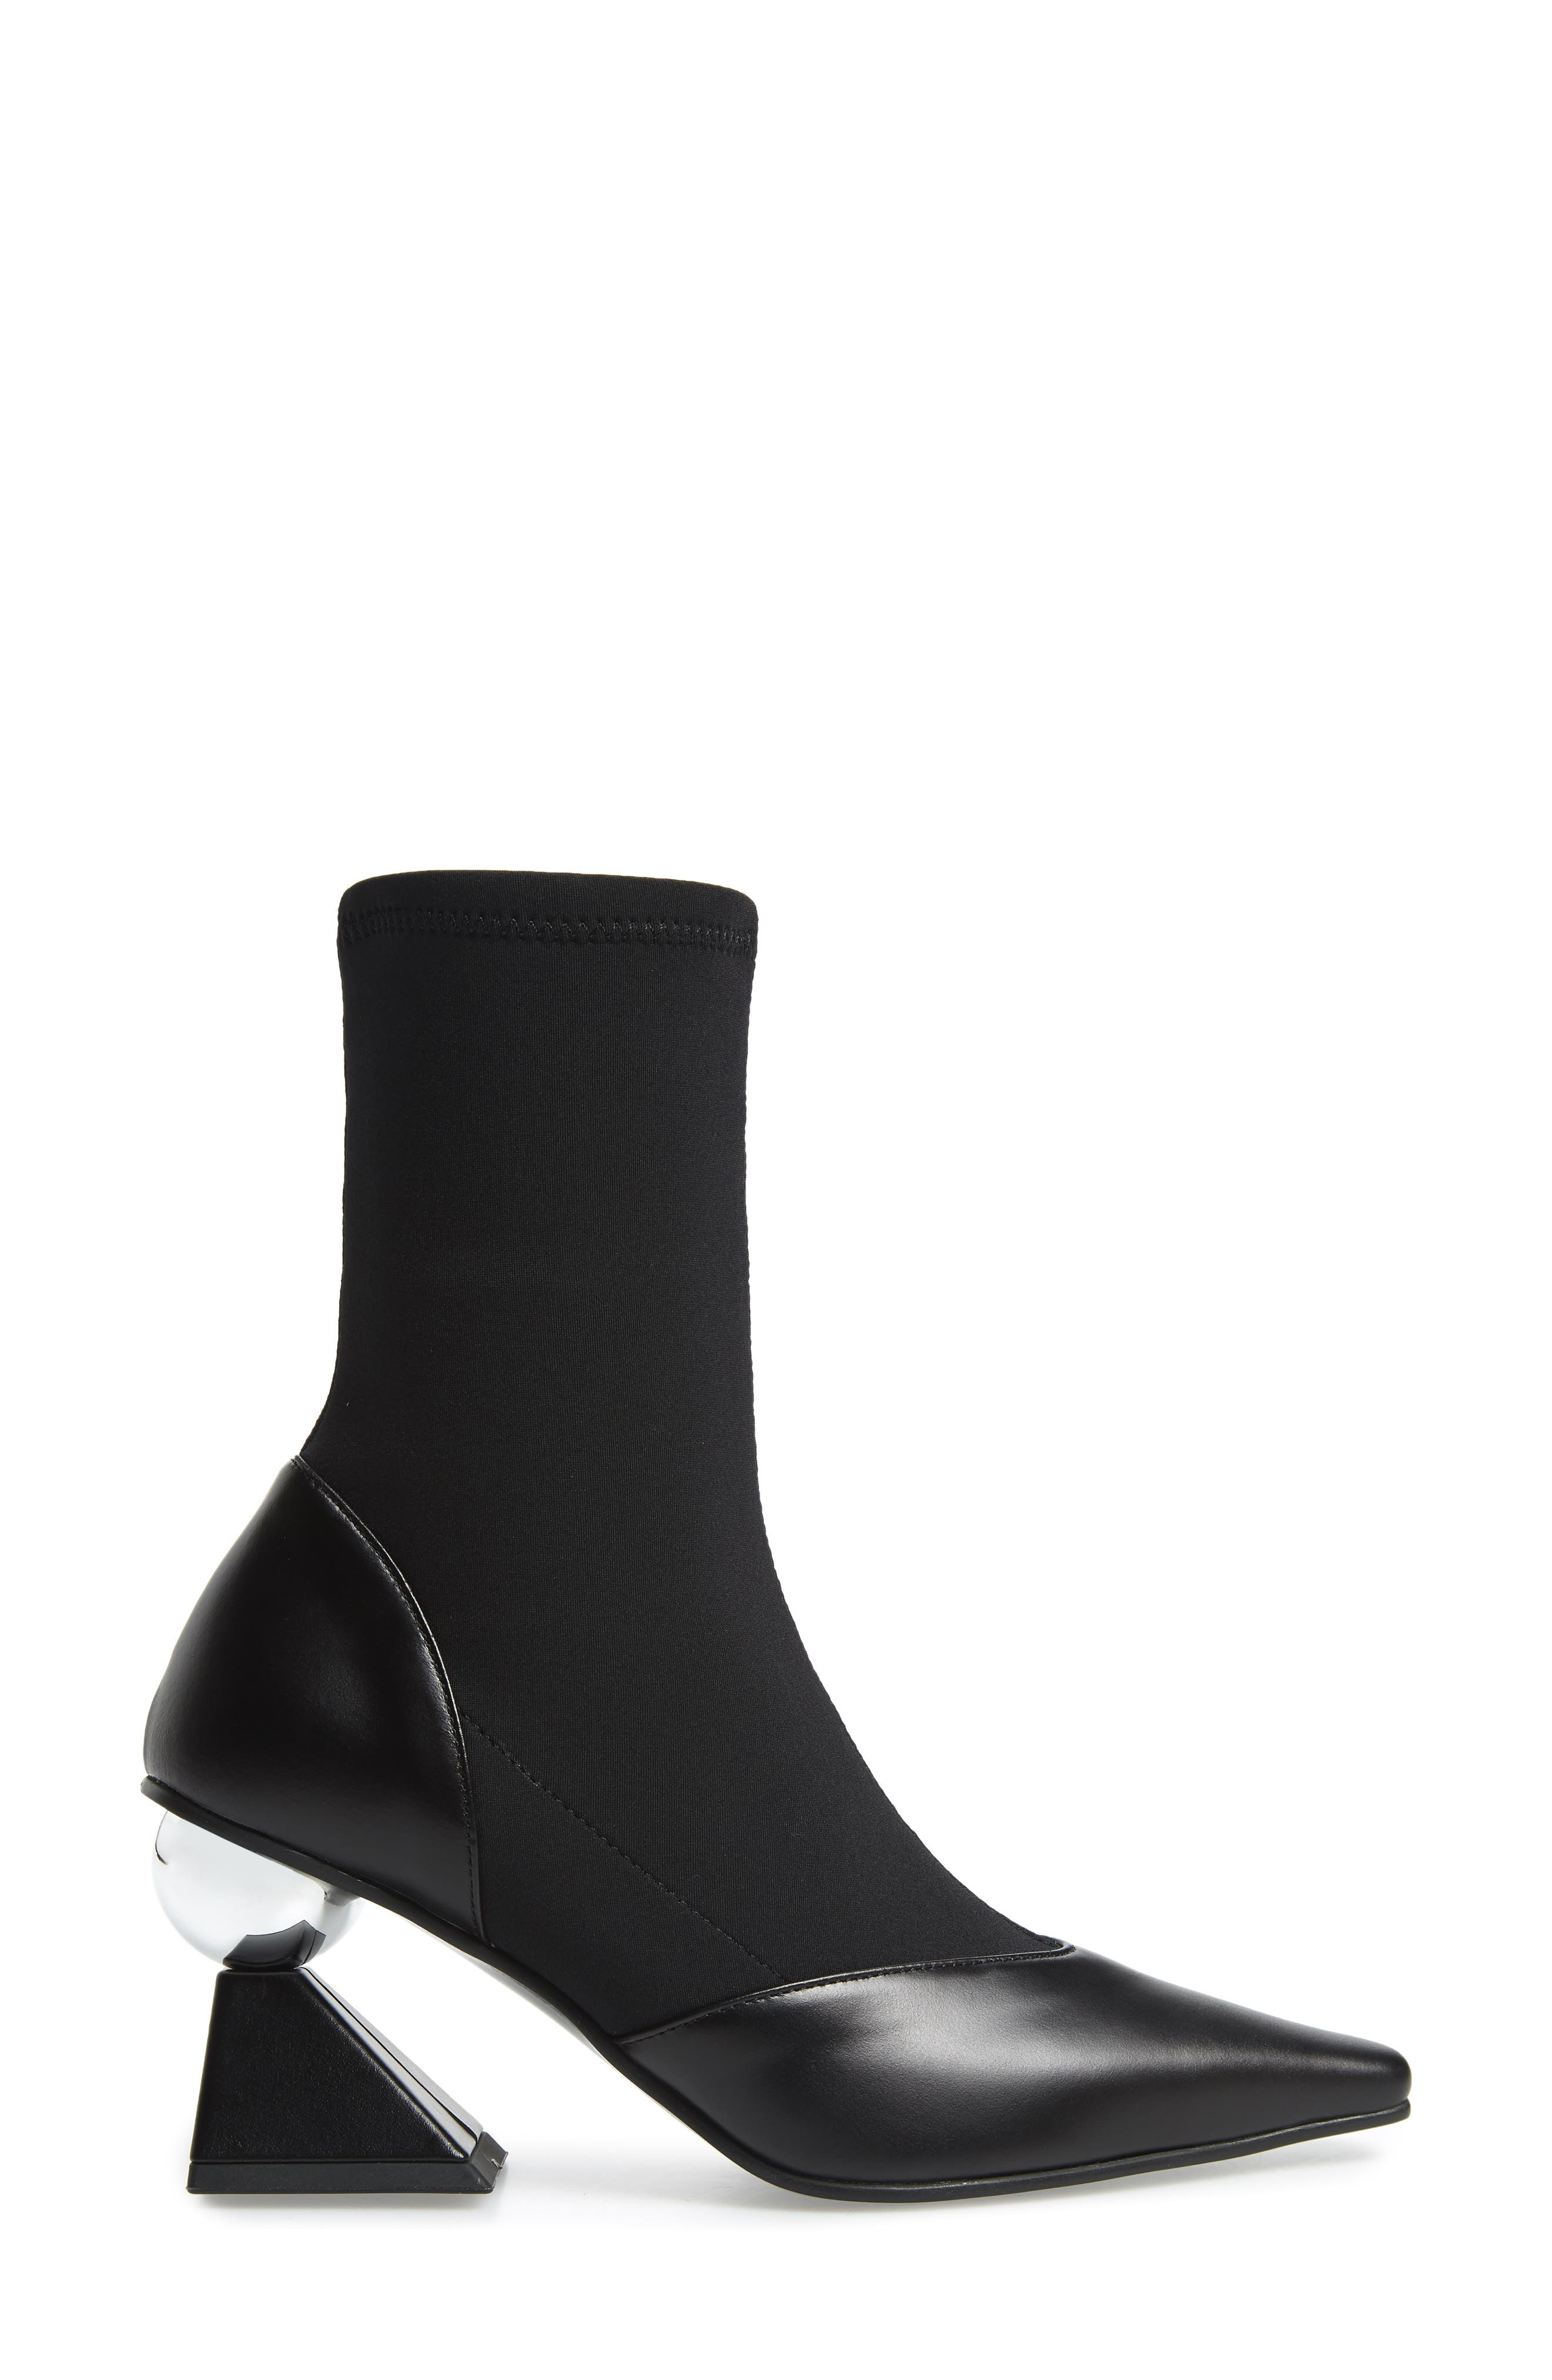 Statement Heel Sock Bootie,                             Alternate thumbnail 3, color,                             BLACK/ SILVER